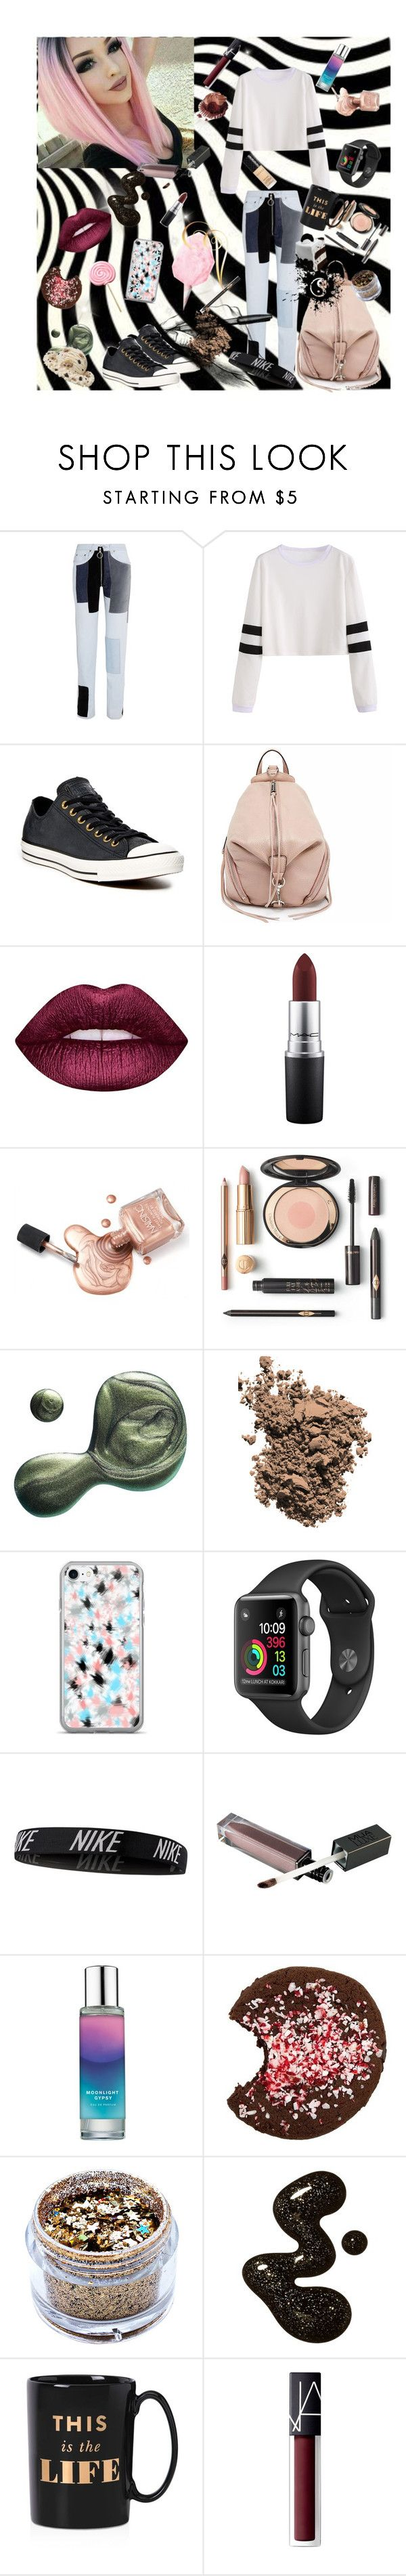 """🦄"" by p0livore ❤ liked on Polyvore featuring Off-White, Converse, Rebecca Minkoff, Lime Crime, MAC Cosmetics, Illamasqua, Dolce&Gabbana, NIKE, Pinrose and In Your Dreams"